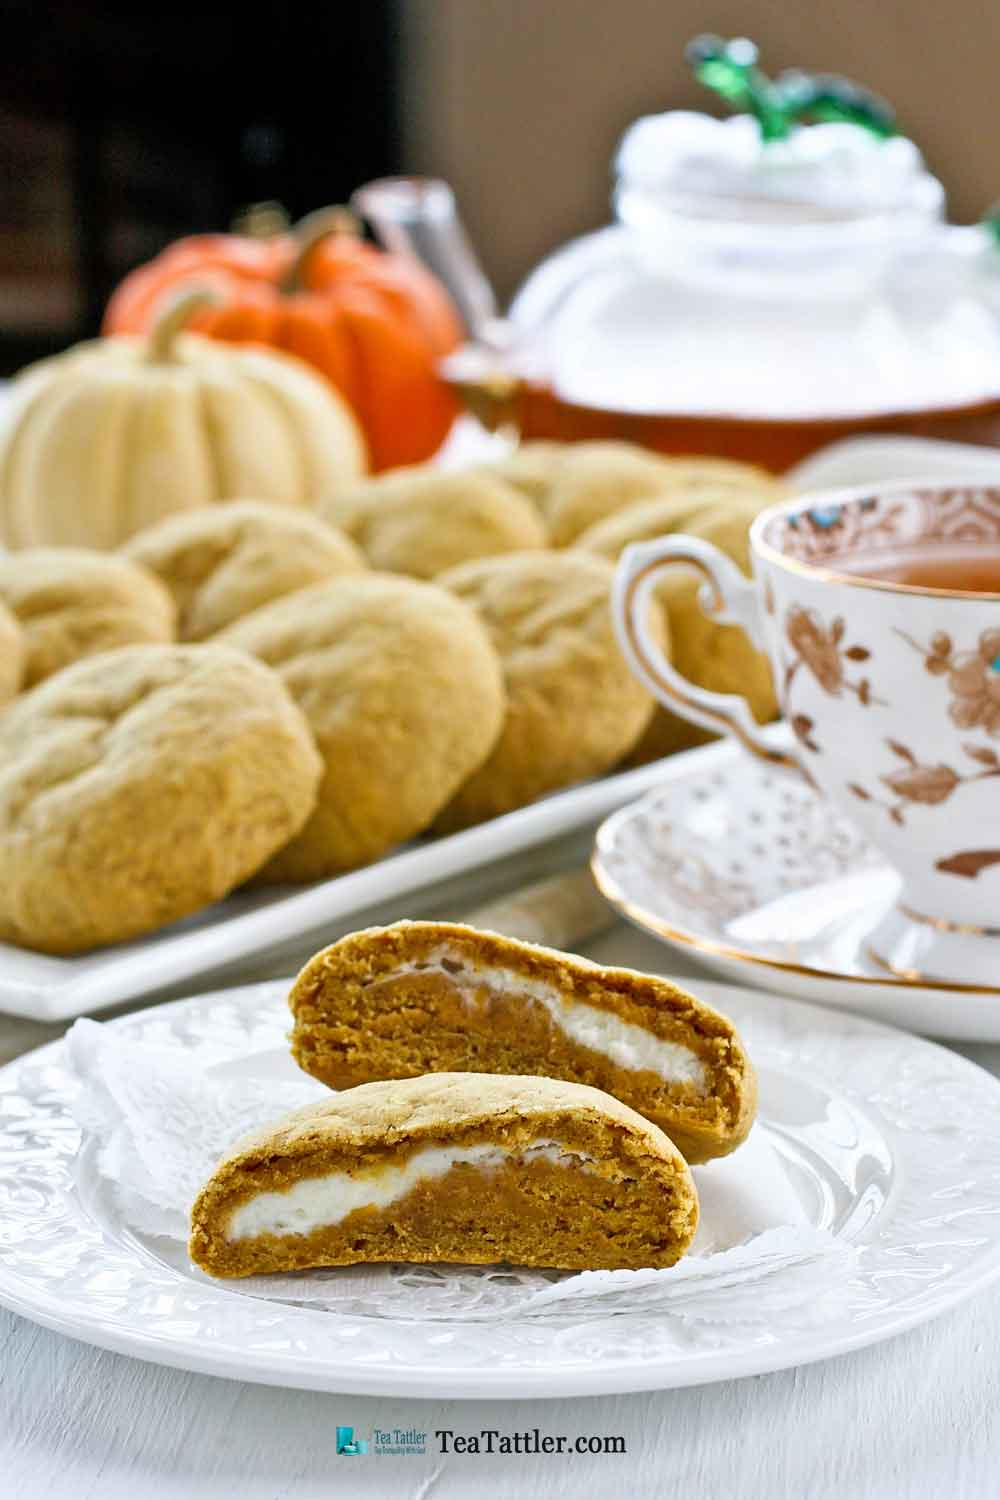 Pumpkin Cream Cheese Cookies - soft and chewy pumpkin flavored cookies with a cream cheese filling and a cake-like texture. | TeaTattler.com #pumpkincookies #creamcheesecookies #filledcookies